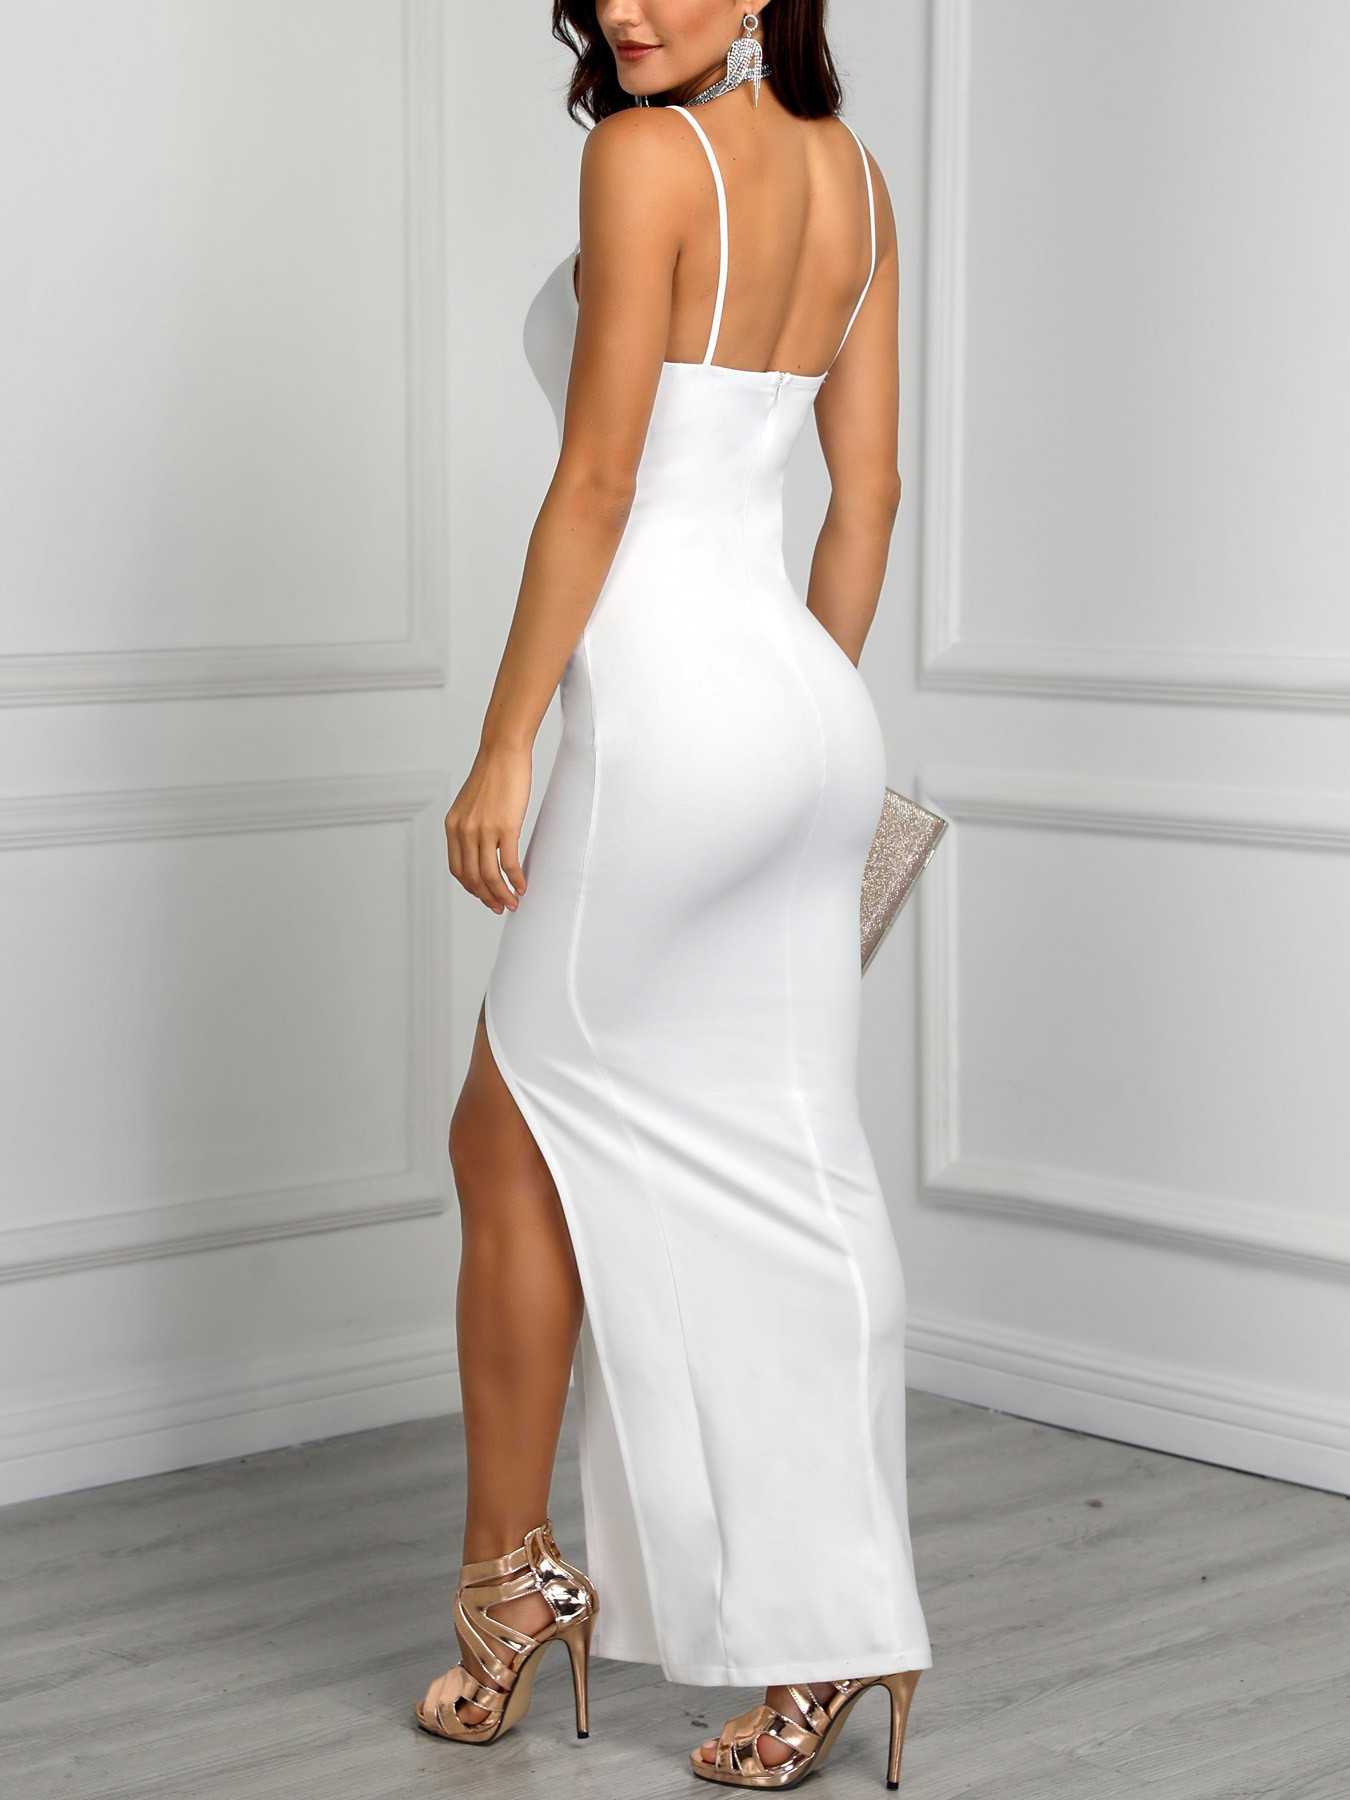 boutiquefeel / Spaghetti Strap Ruched High Slit Evening Dress